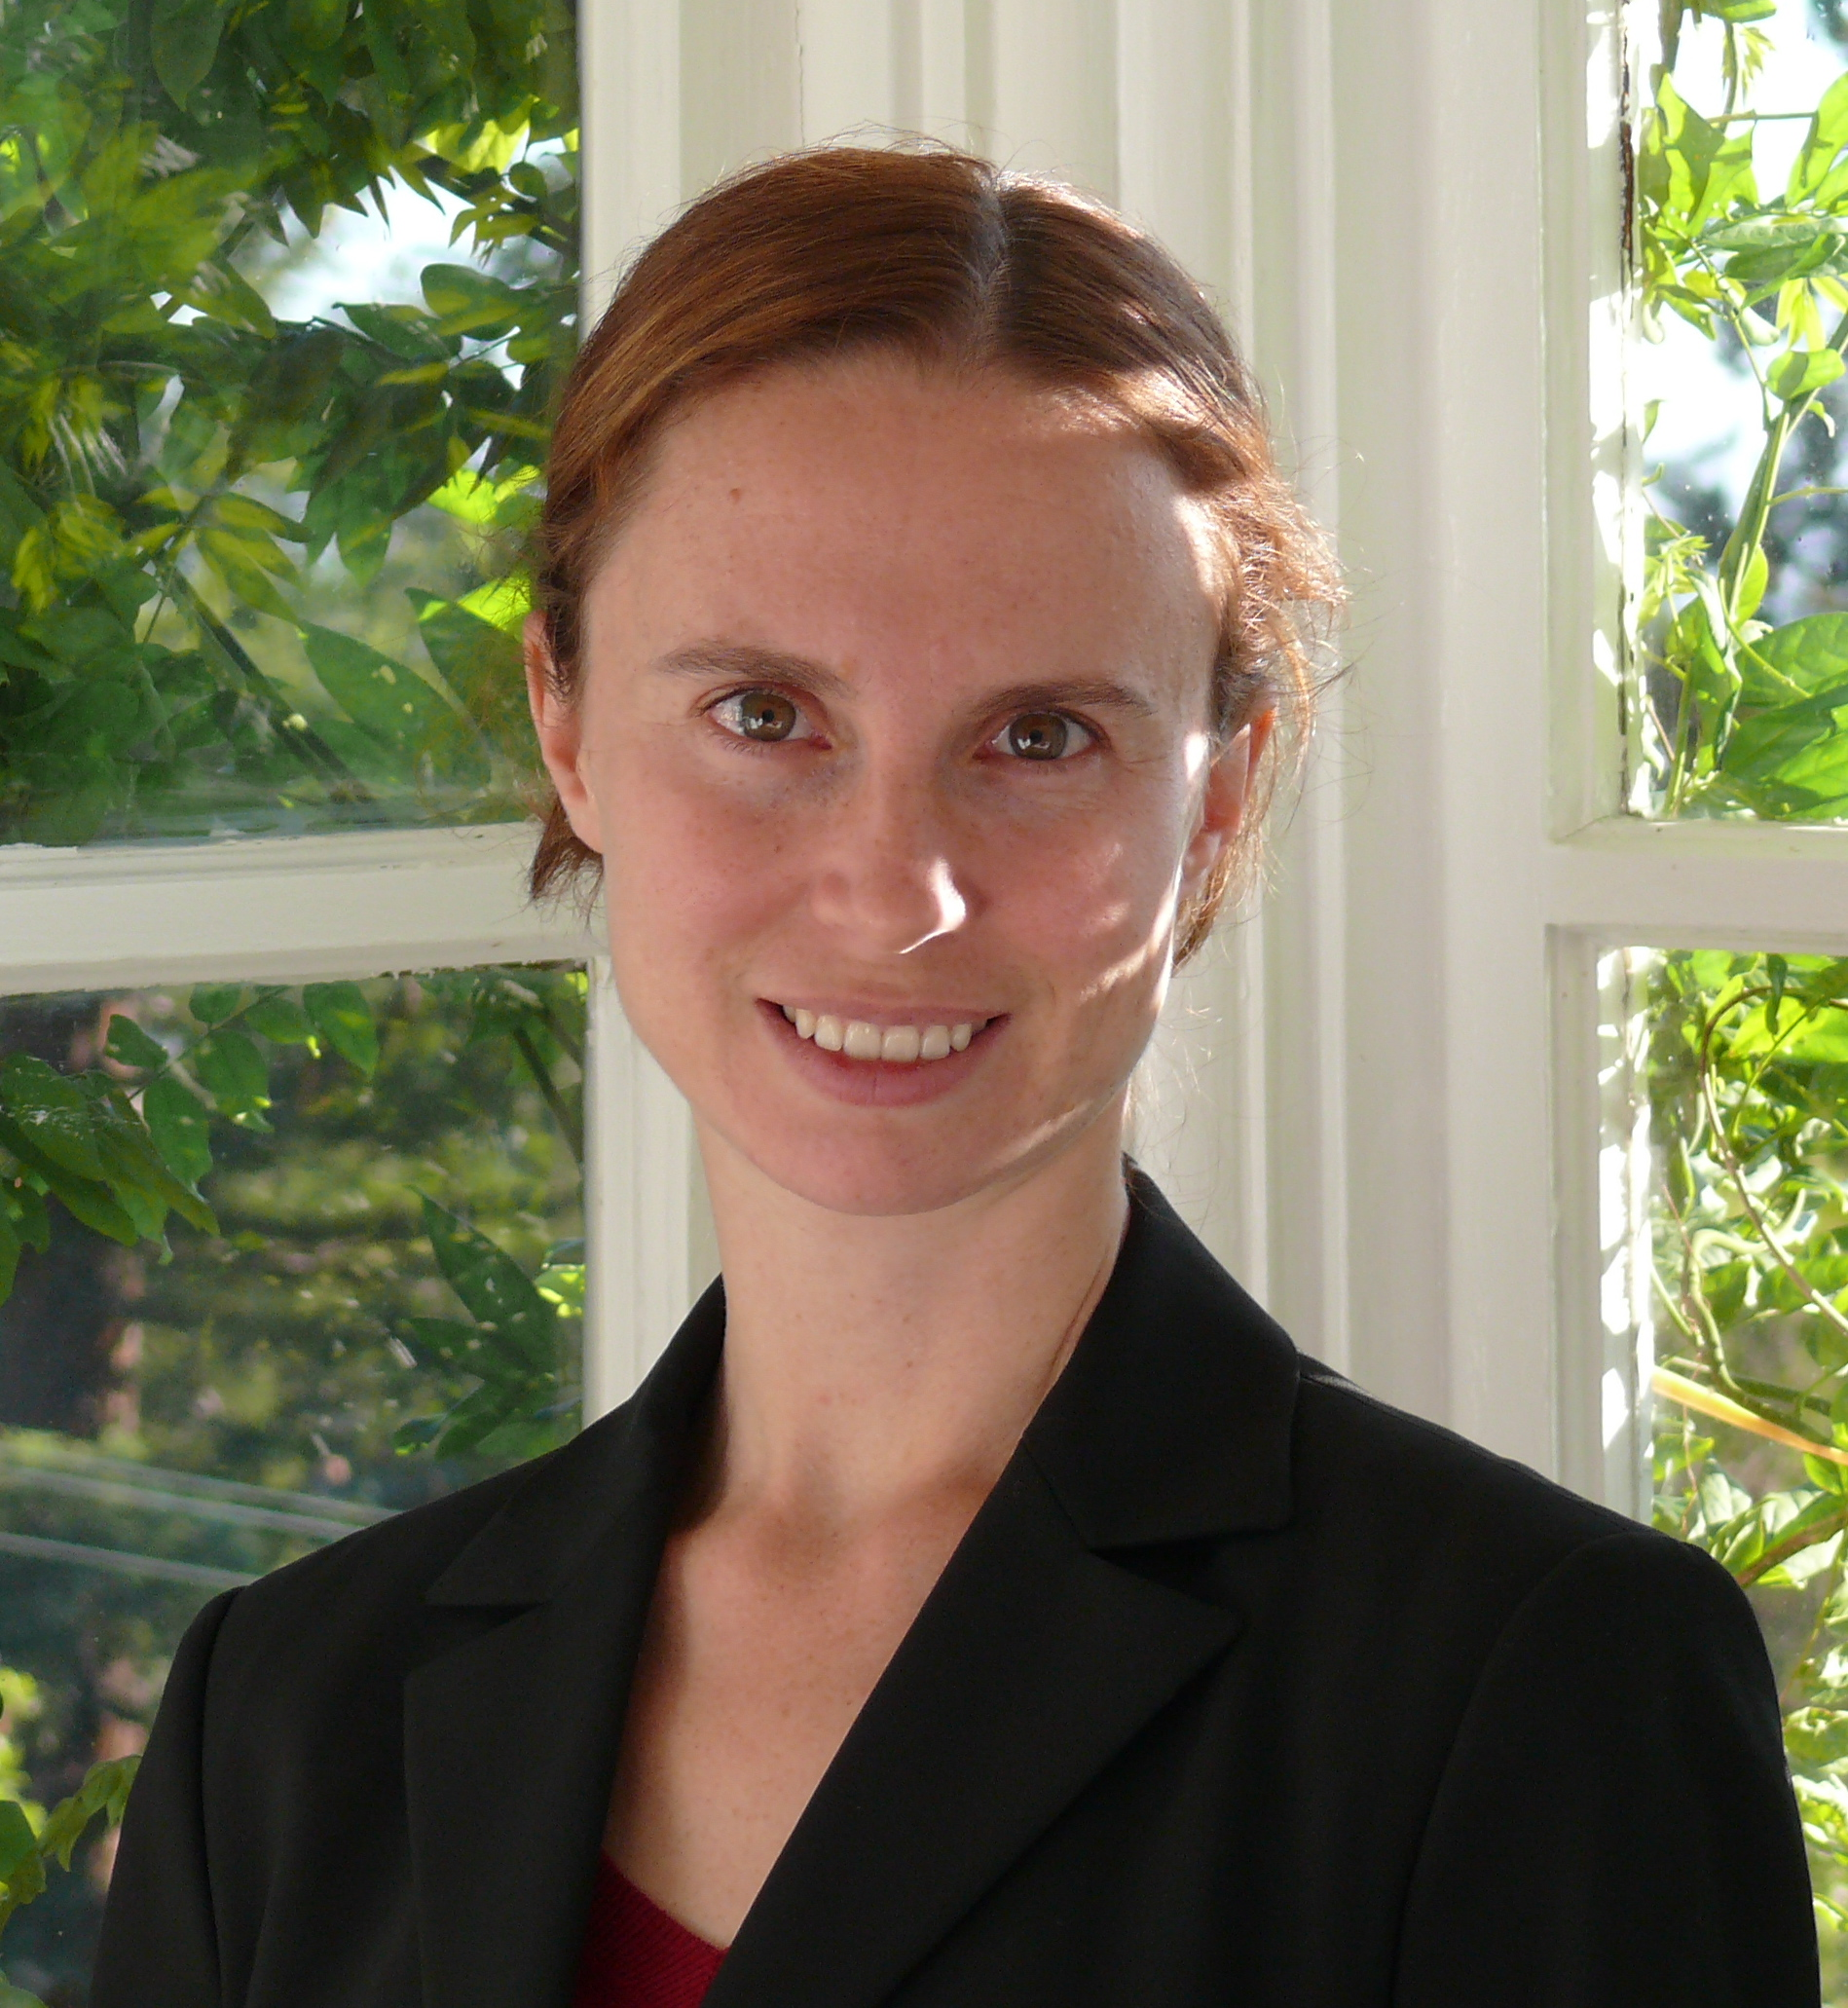 Elizabeth Muller, Exec. Director of Berkeley Earth